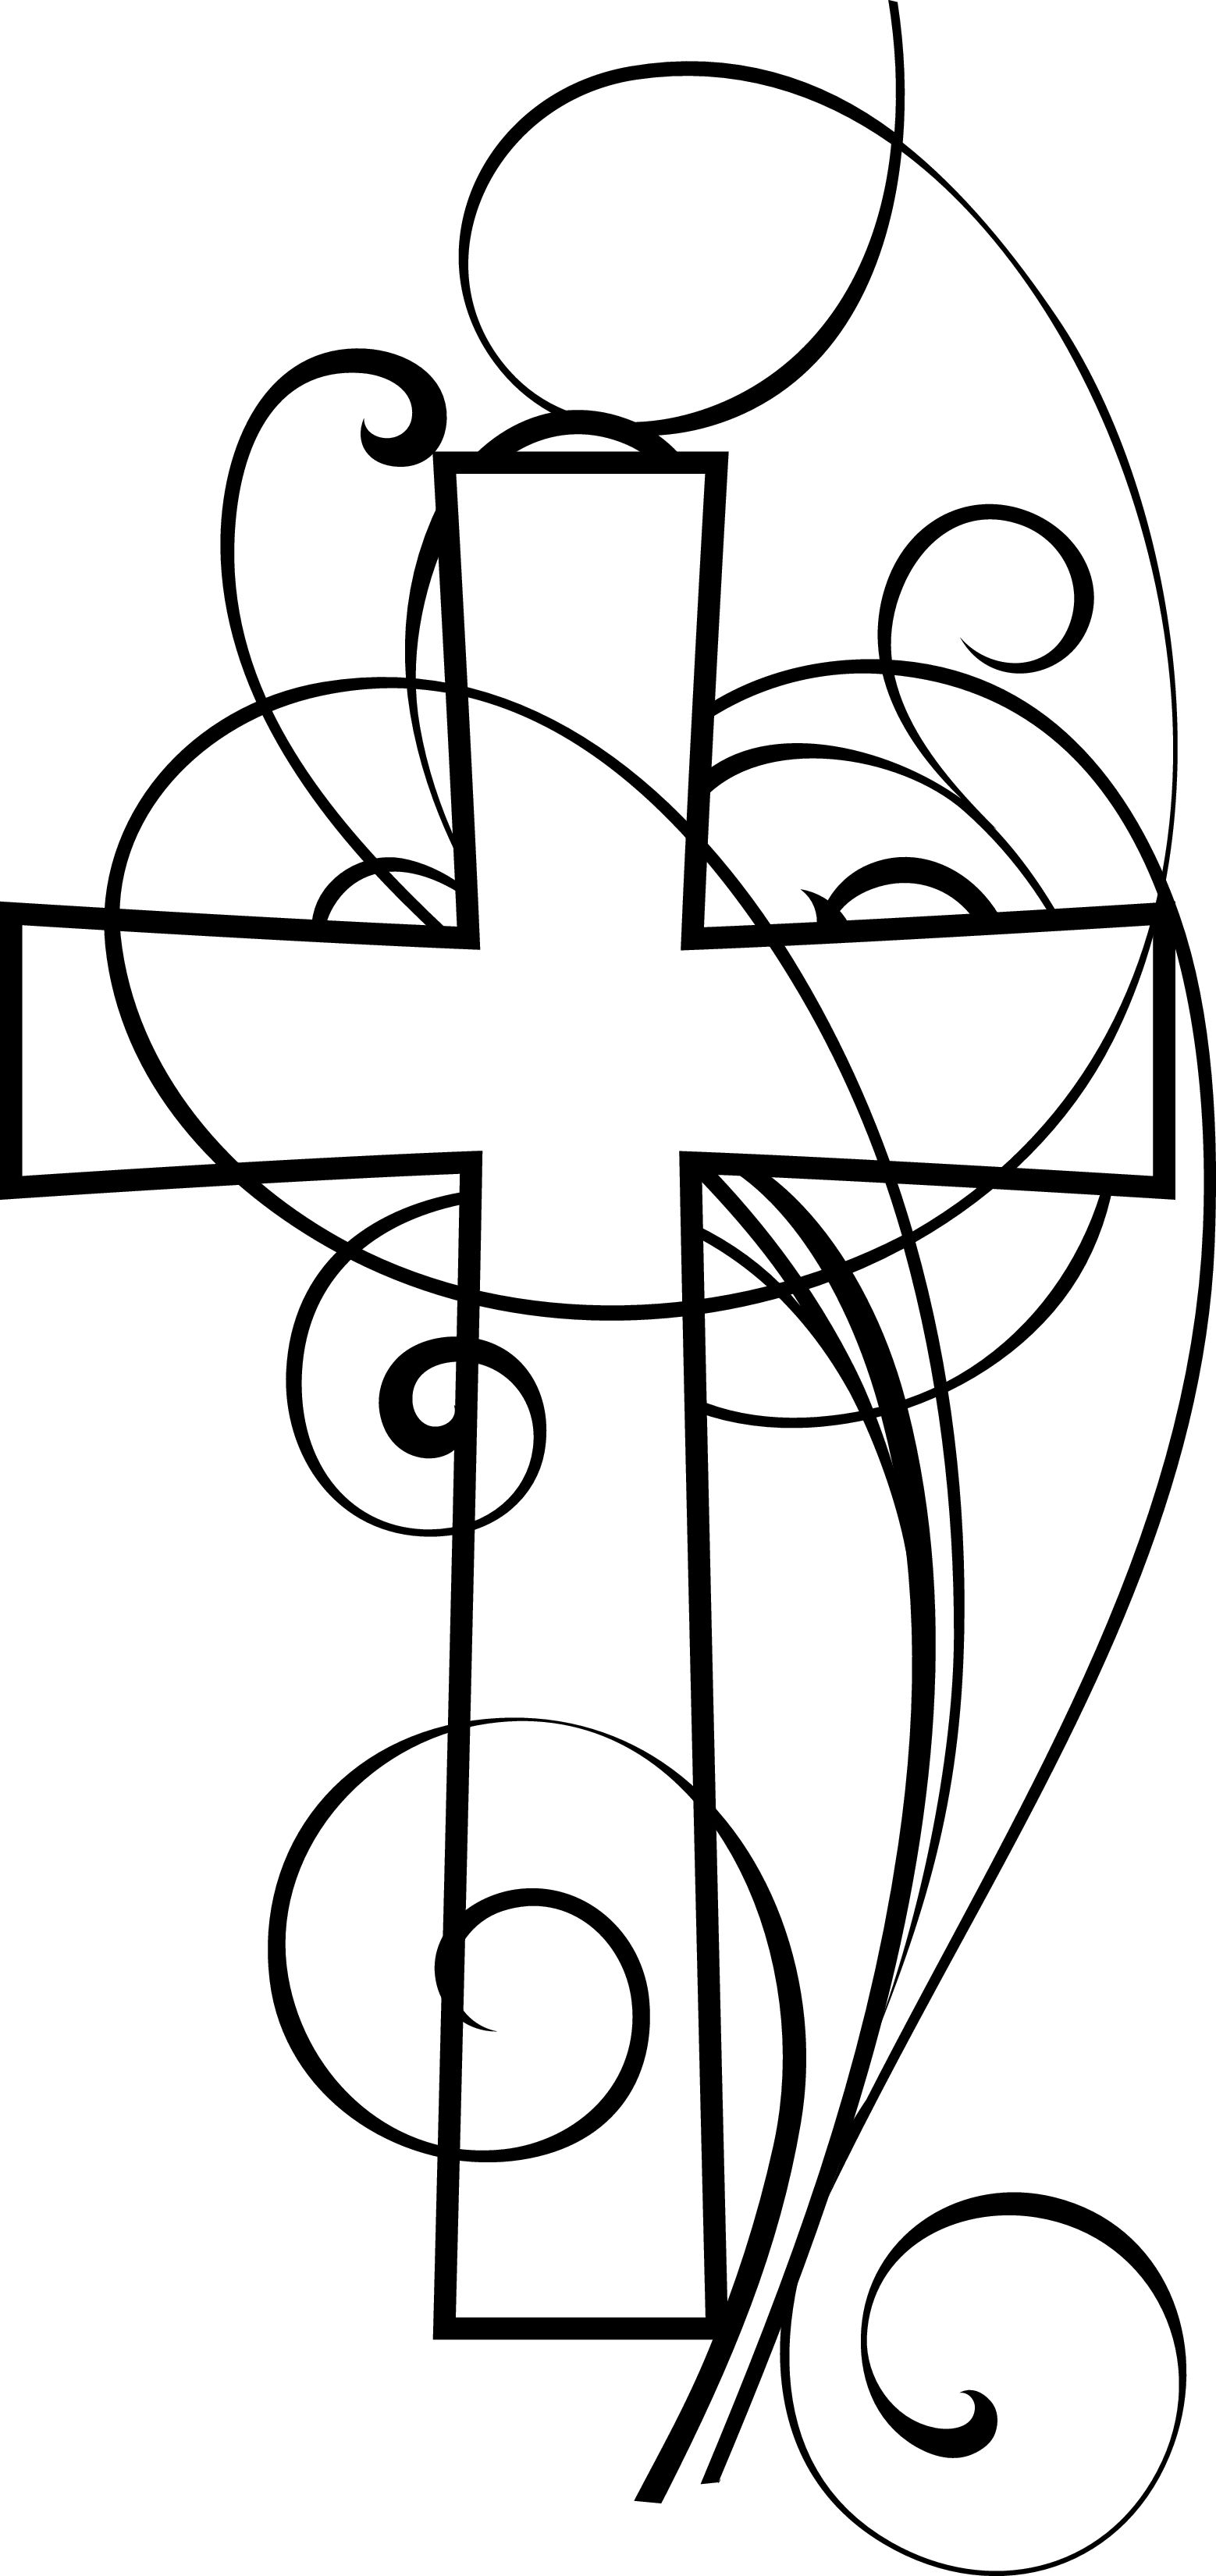 Cross clipart. Google search bible teaching png royalty free library